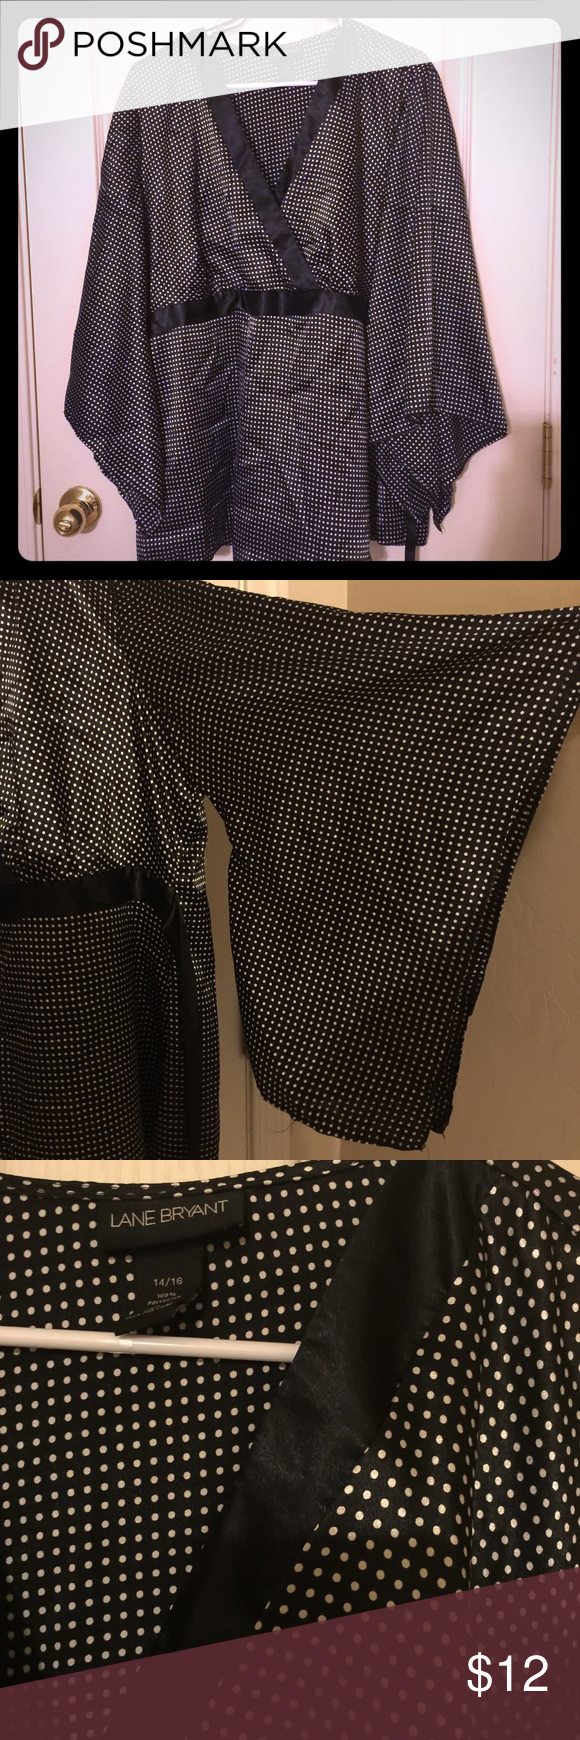 Lane Bryant kimono blouse Beautiful silky black with white polka dot kimono blouse with gorgeous waterfall sleeves and a tie in the back. In great condition! Size 14/16 Lane Bryant Tops